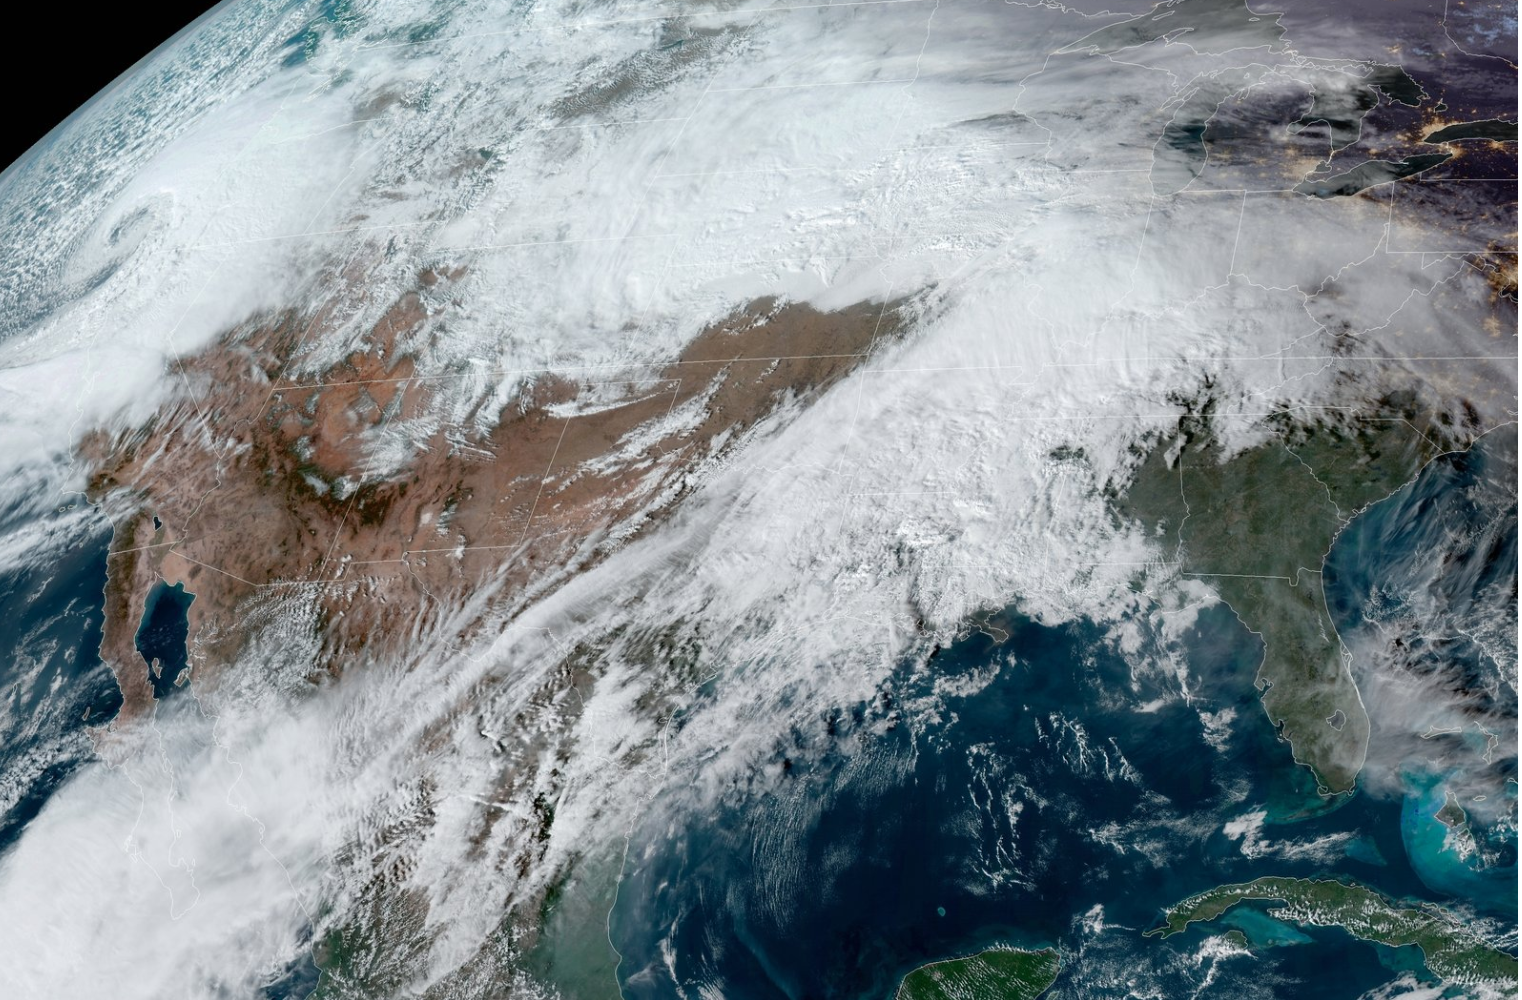 'Bomb Cyclone' Winter Storm Will Hit US As Thanksgiving Nears, Forecasters Warn